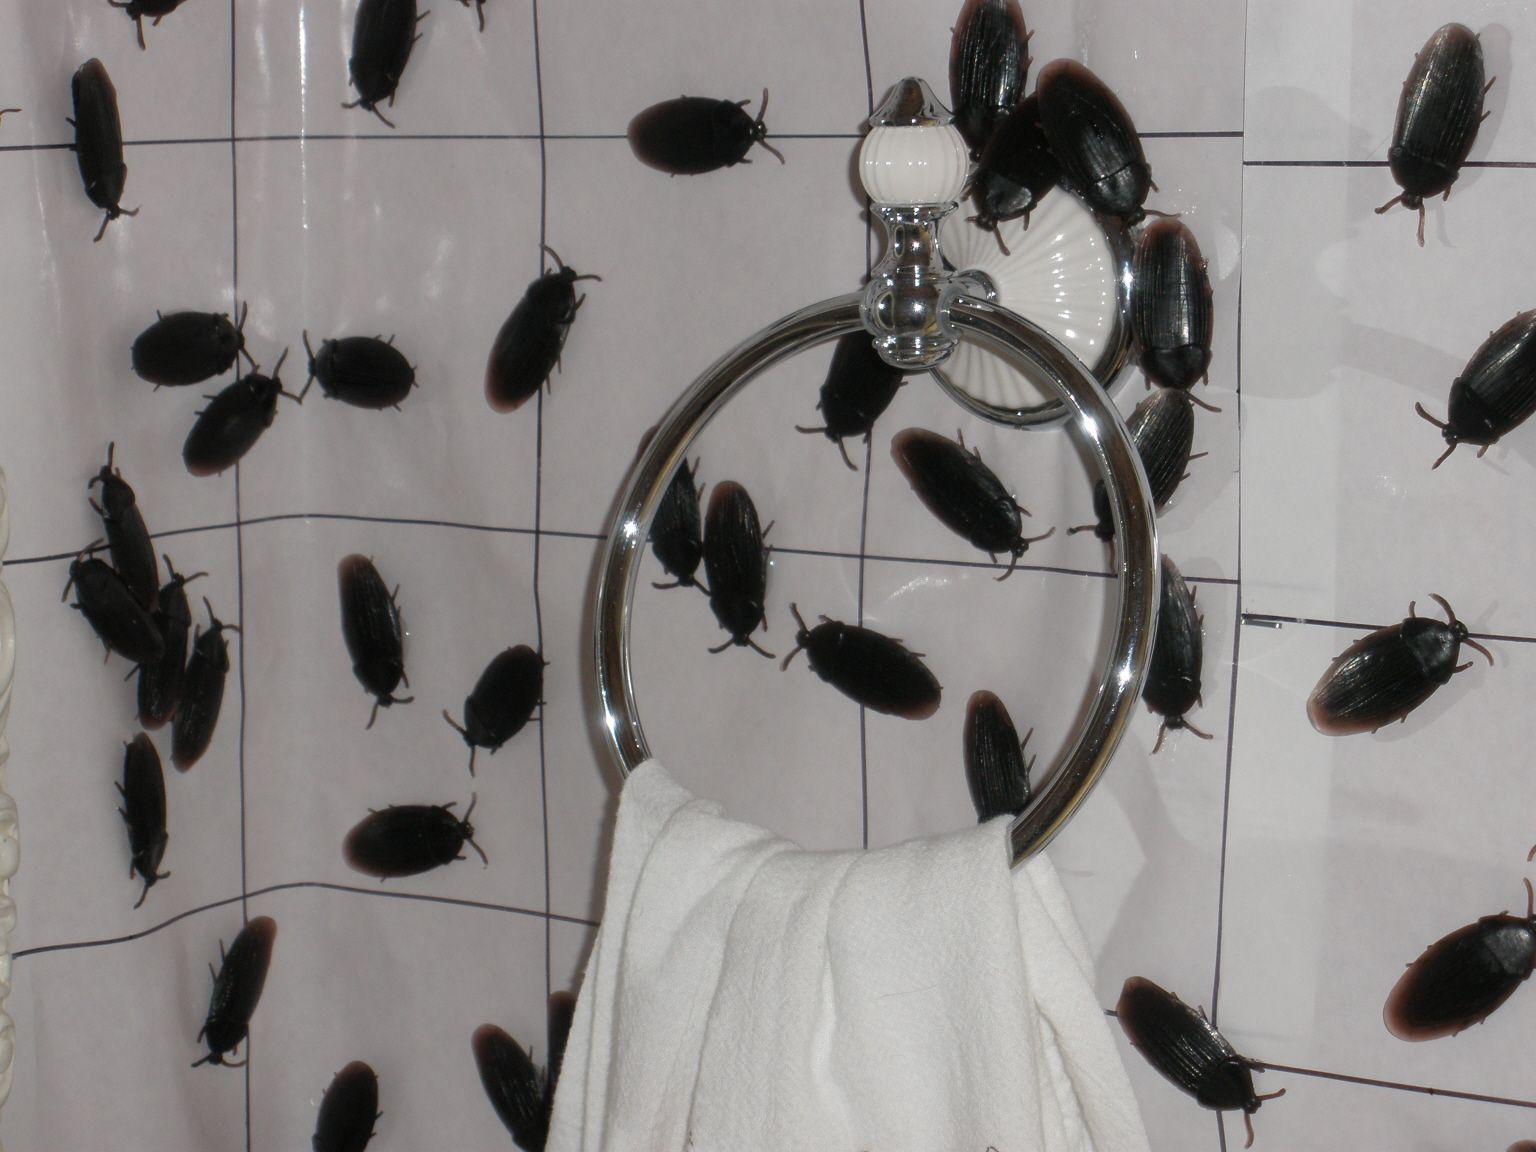 5 spooky ways to decorate your bathroom this halloween - Halloween Bathroom Decorations